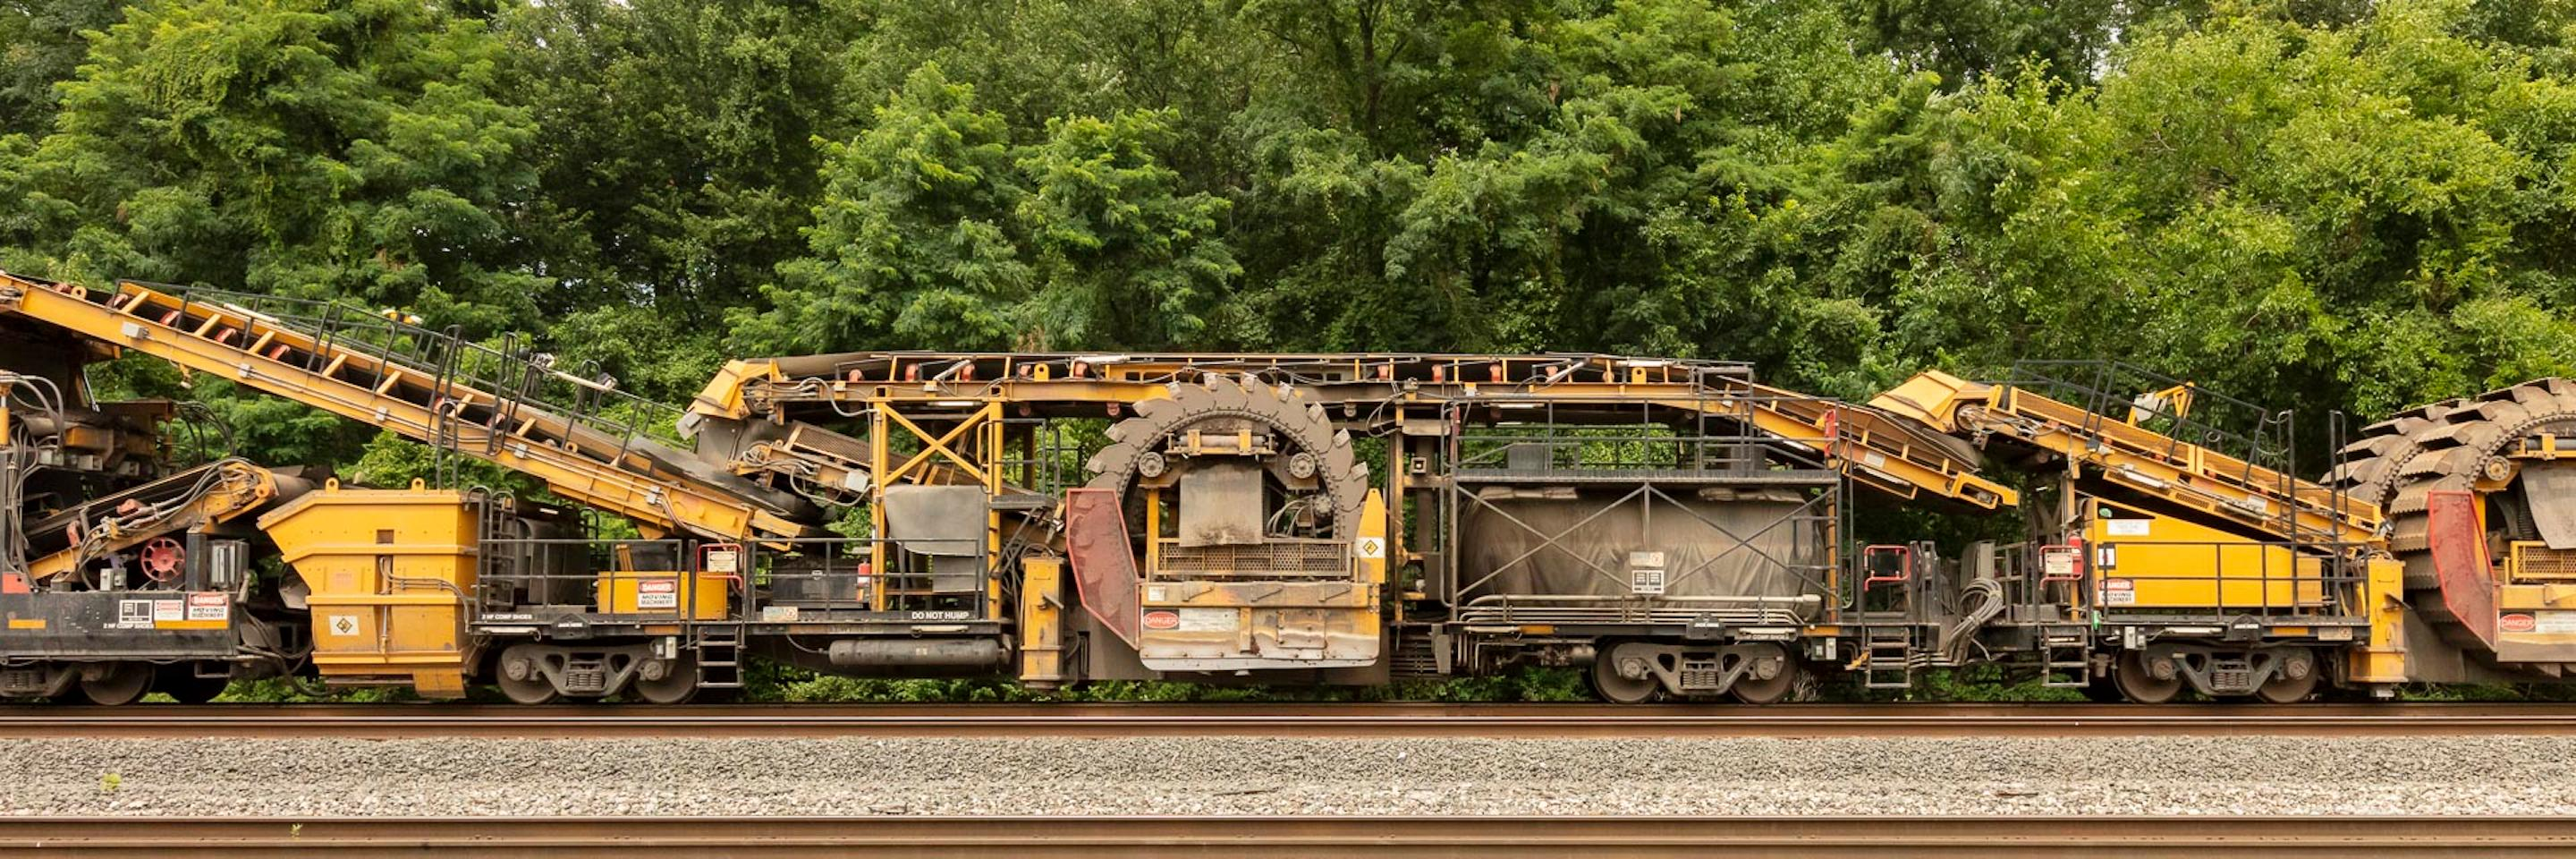 """Freight Train Contemporary Photograph, """"Undercutter"""" Limited Edition C-Print"""